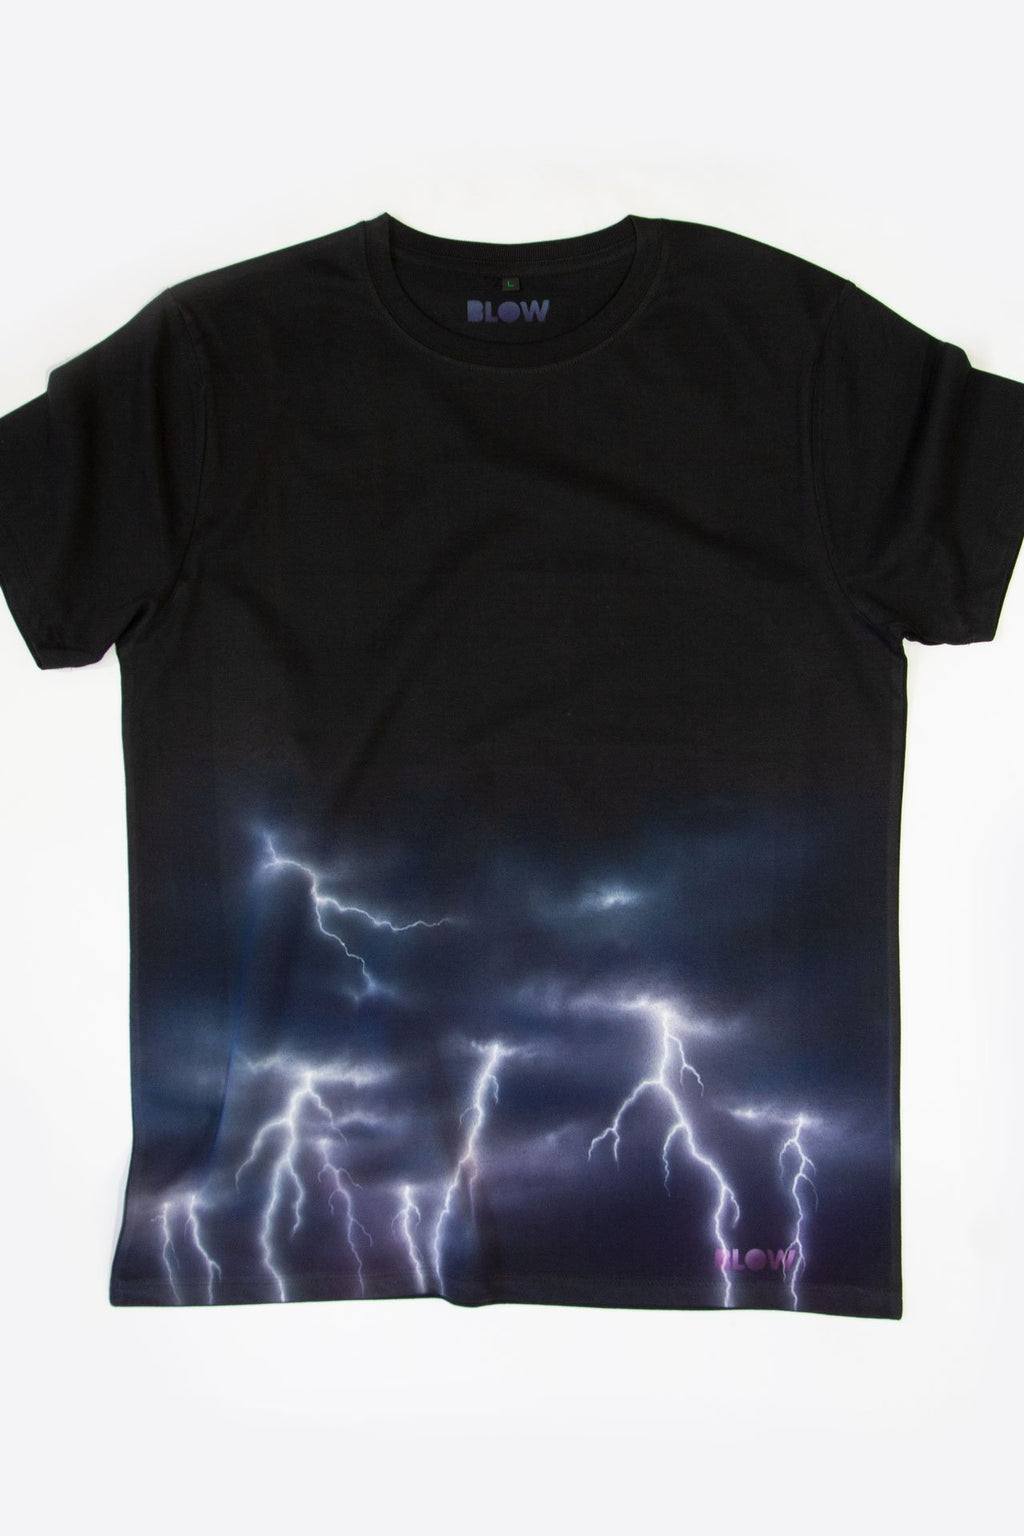 ELECTRIC STORM (Black) - Unisex premium short sleeve t-shirt - BLOW London